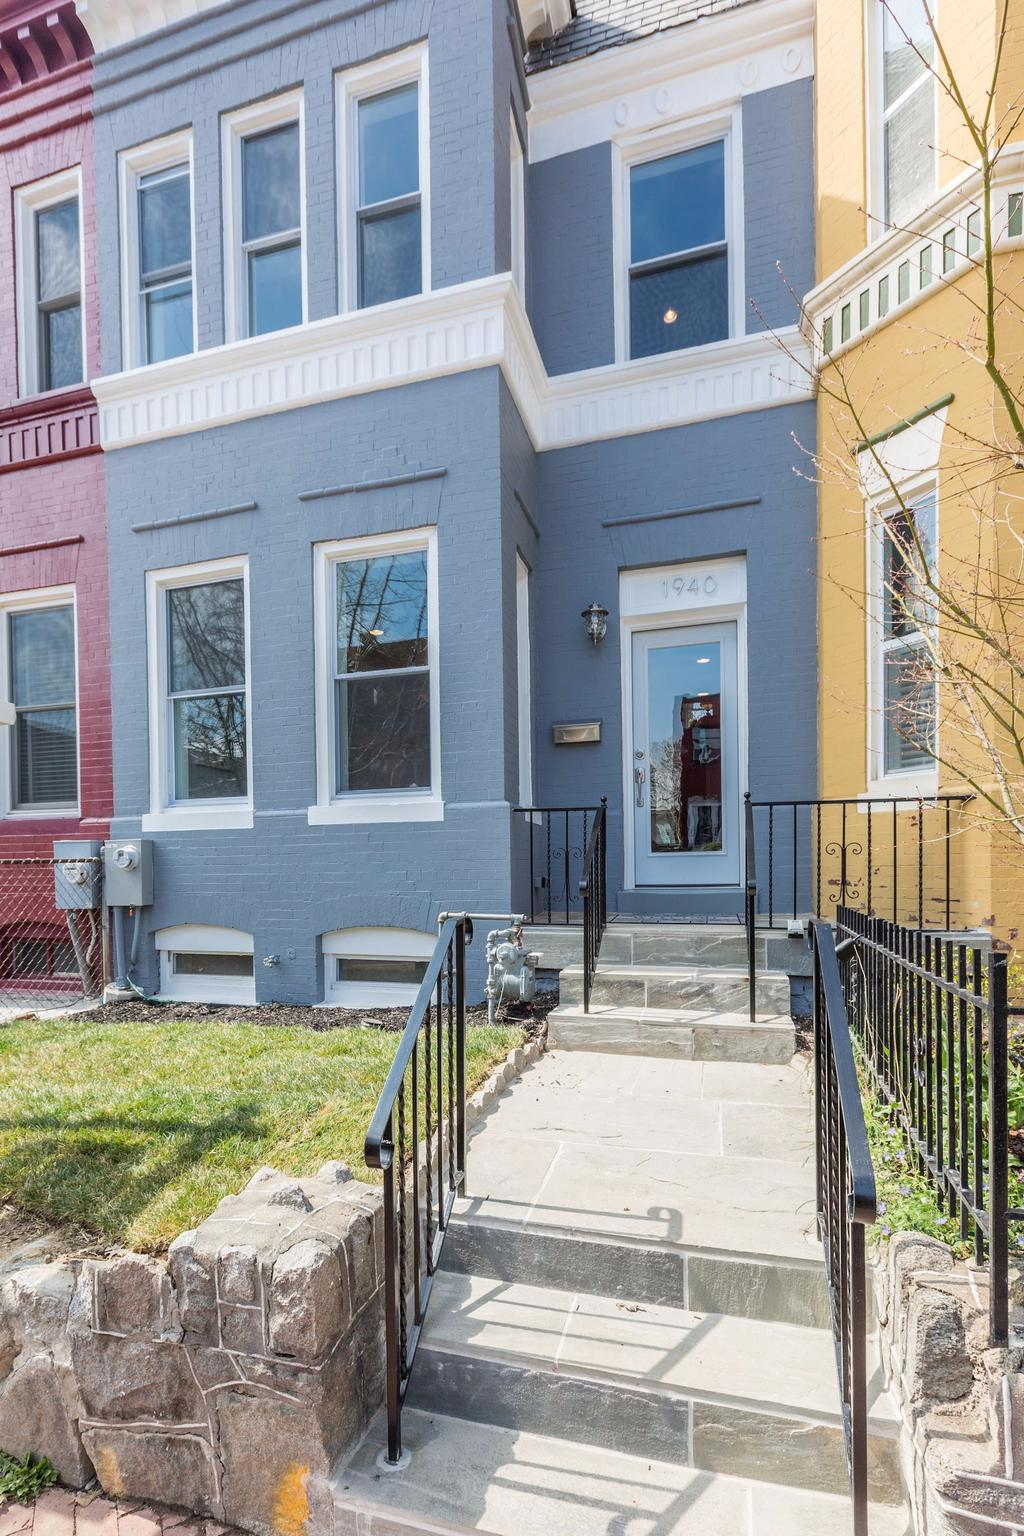 Single Family Home for Rent at 1940 3rd St Nw 1940 3rd St Nw Washington, District Of Columbia 20001 United States